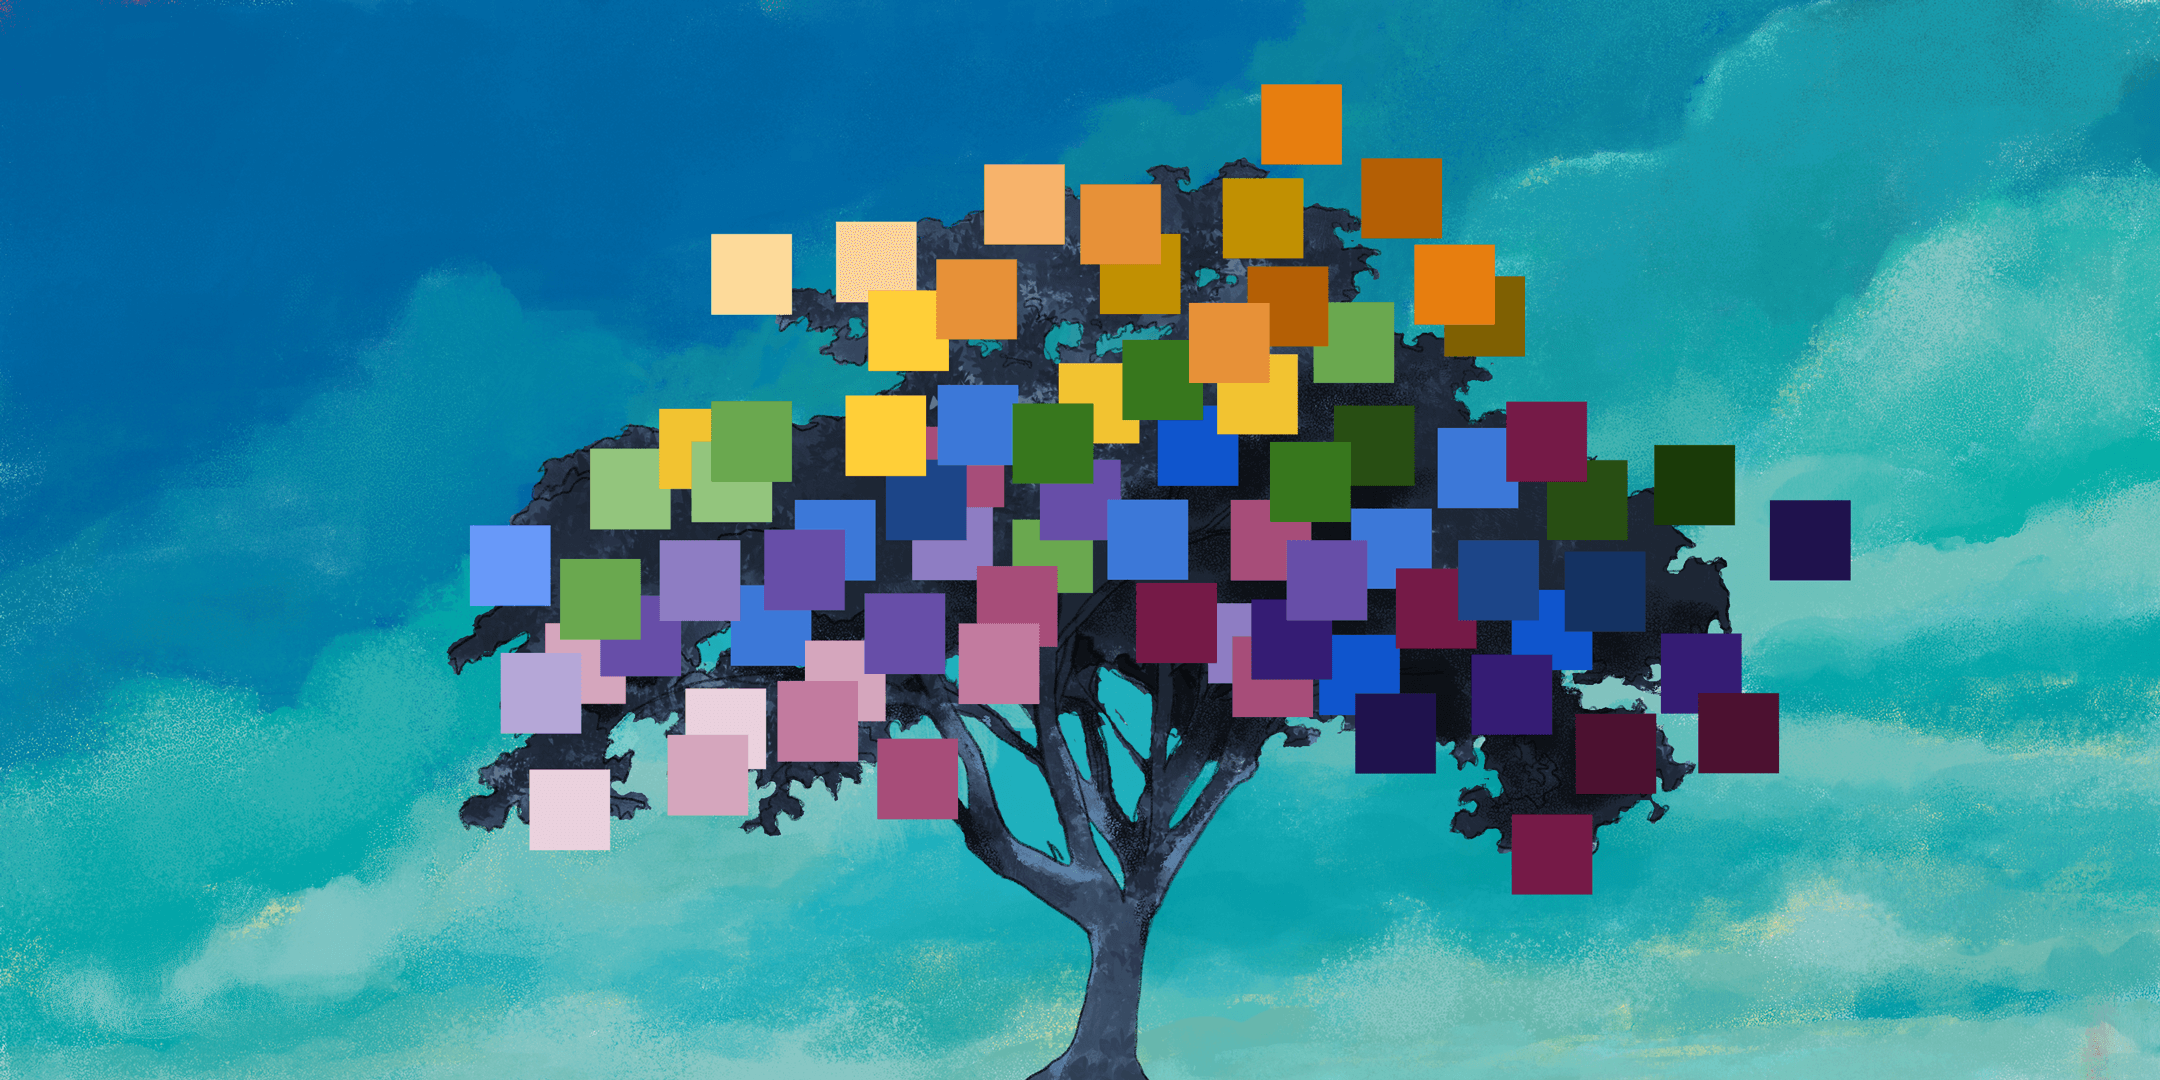 Tree covered in colorful pixel squares